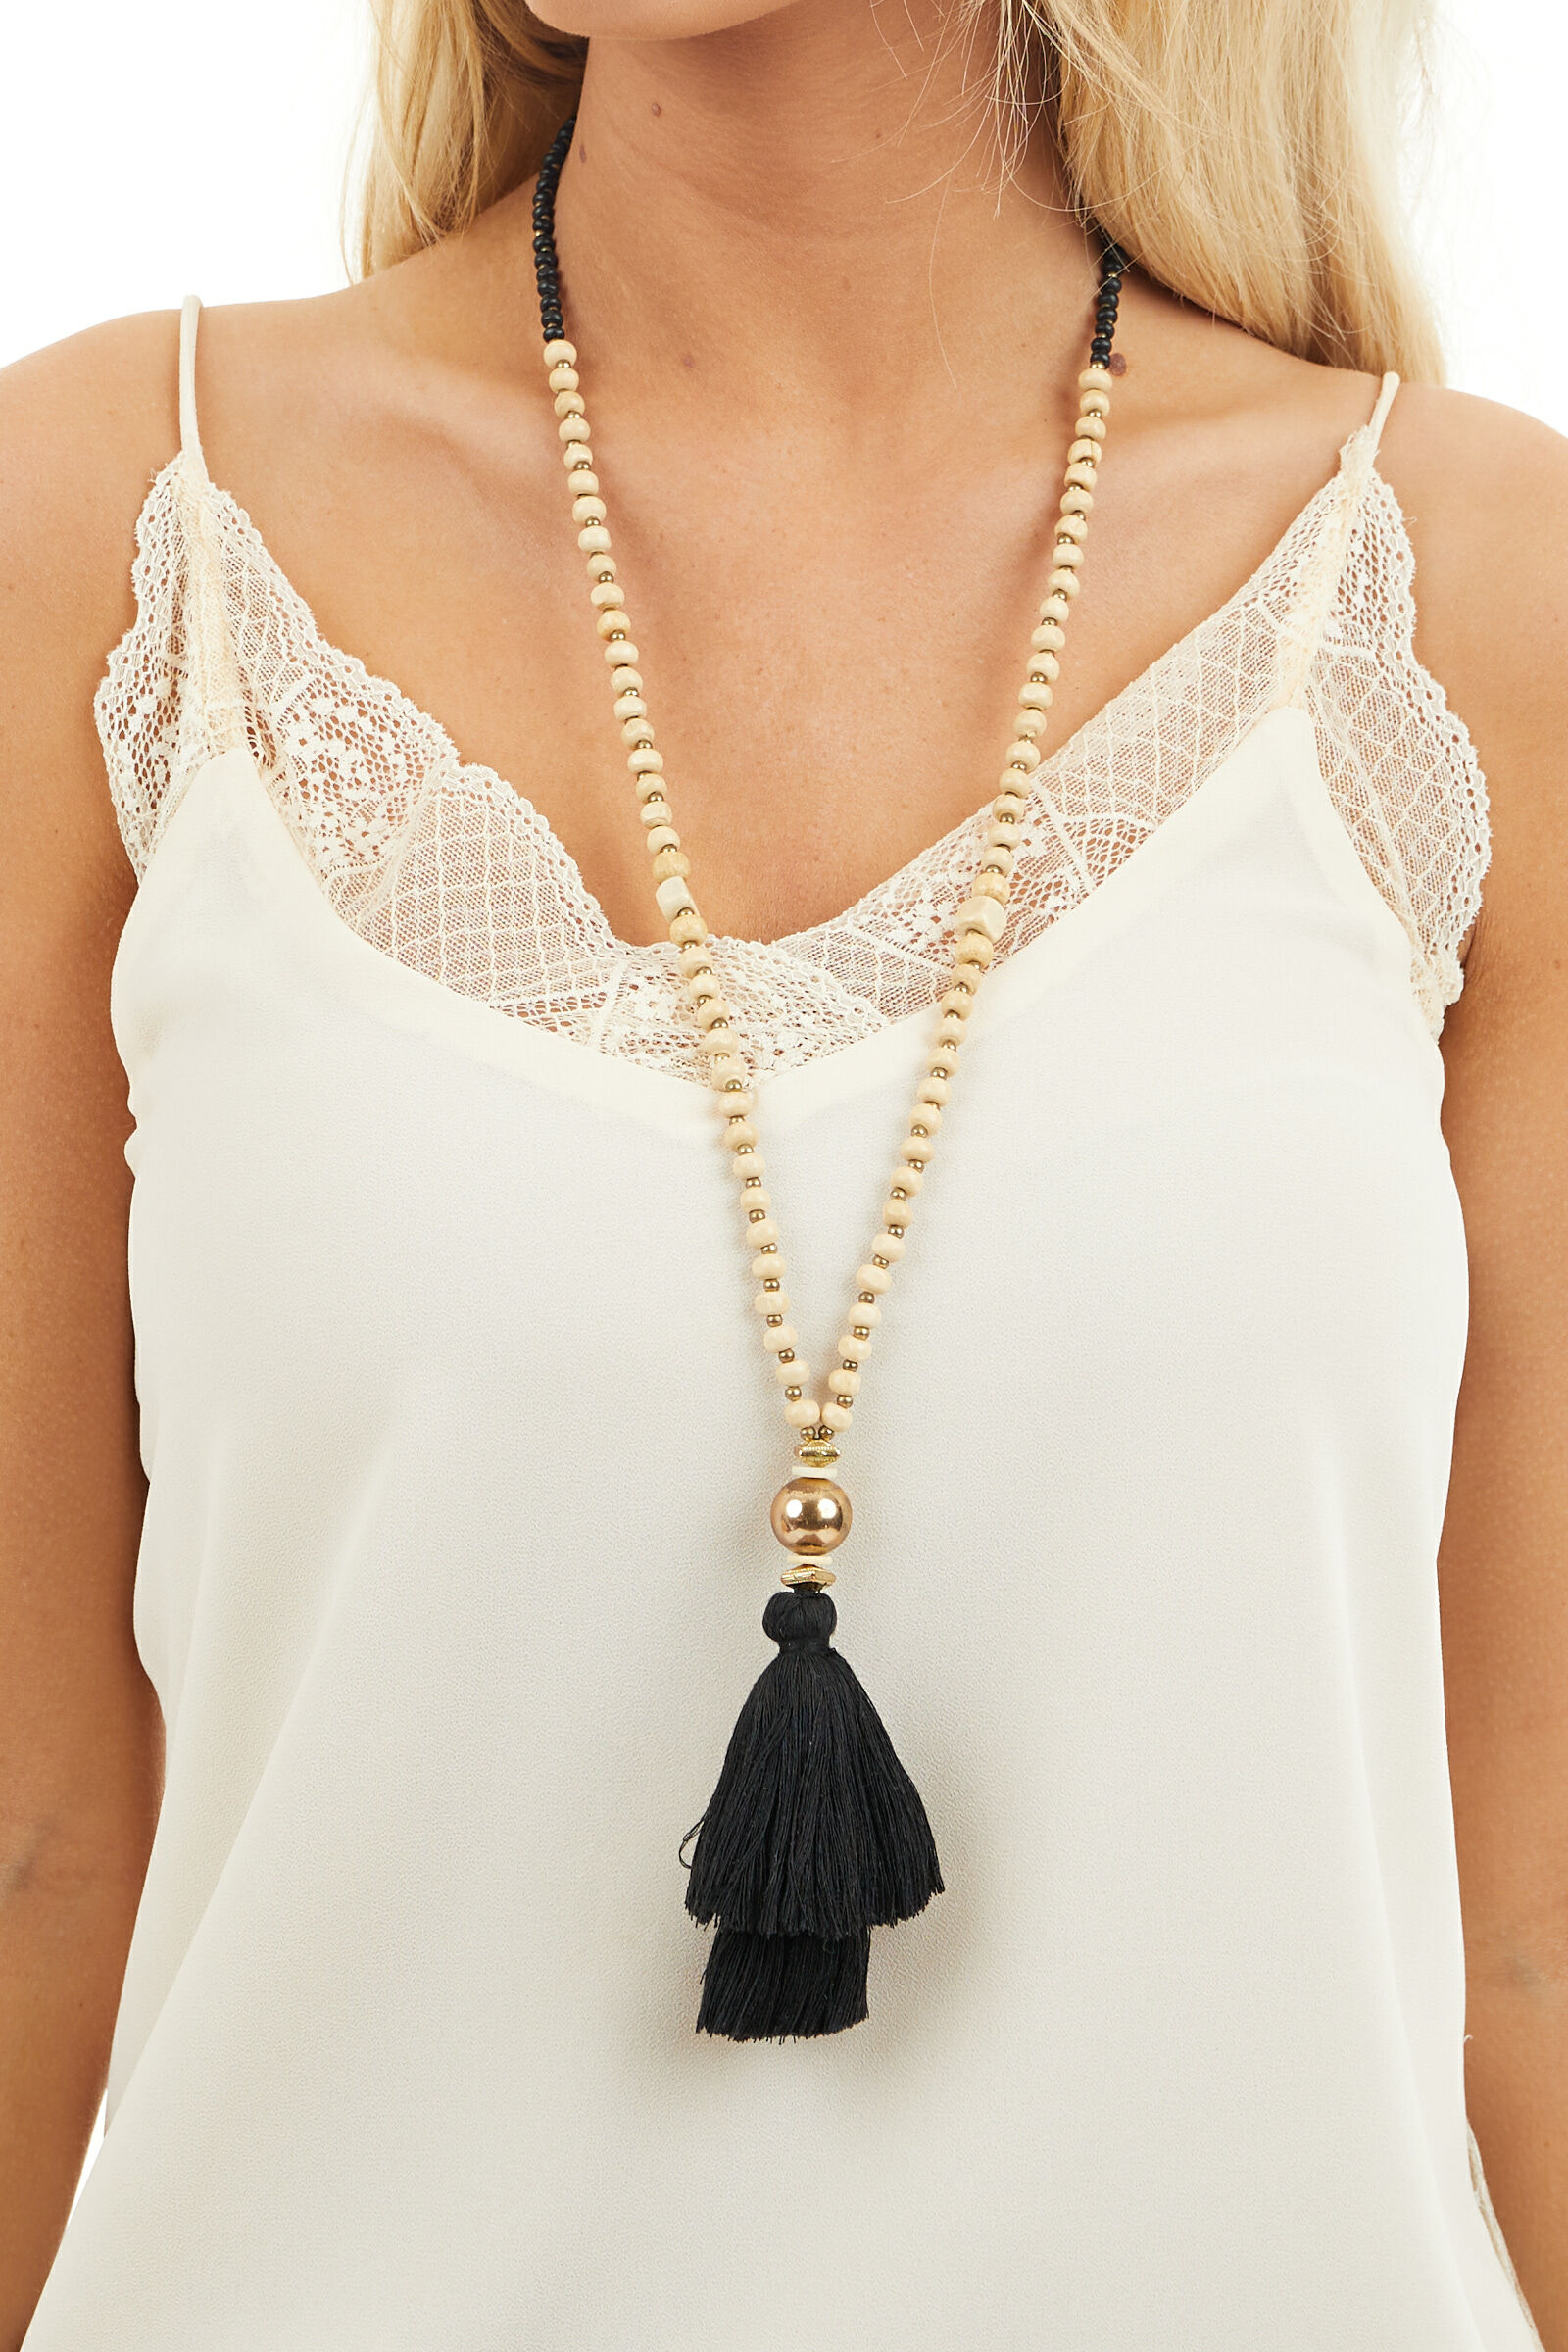 Black and Tan Wood Bead Necklace with Tassel Detail